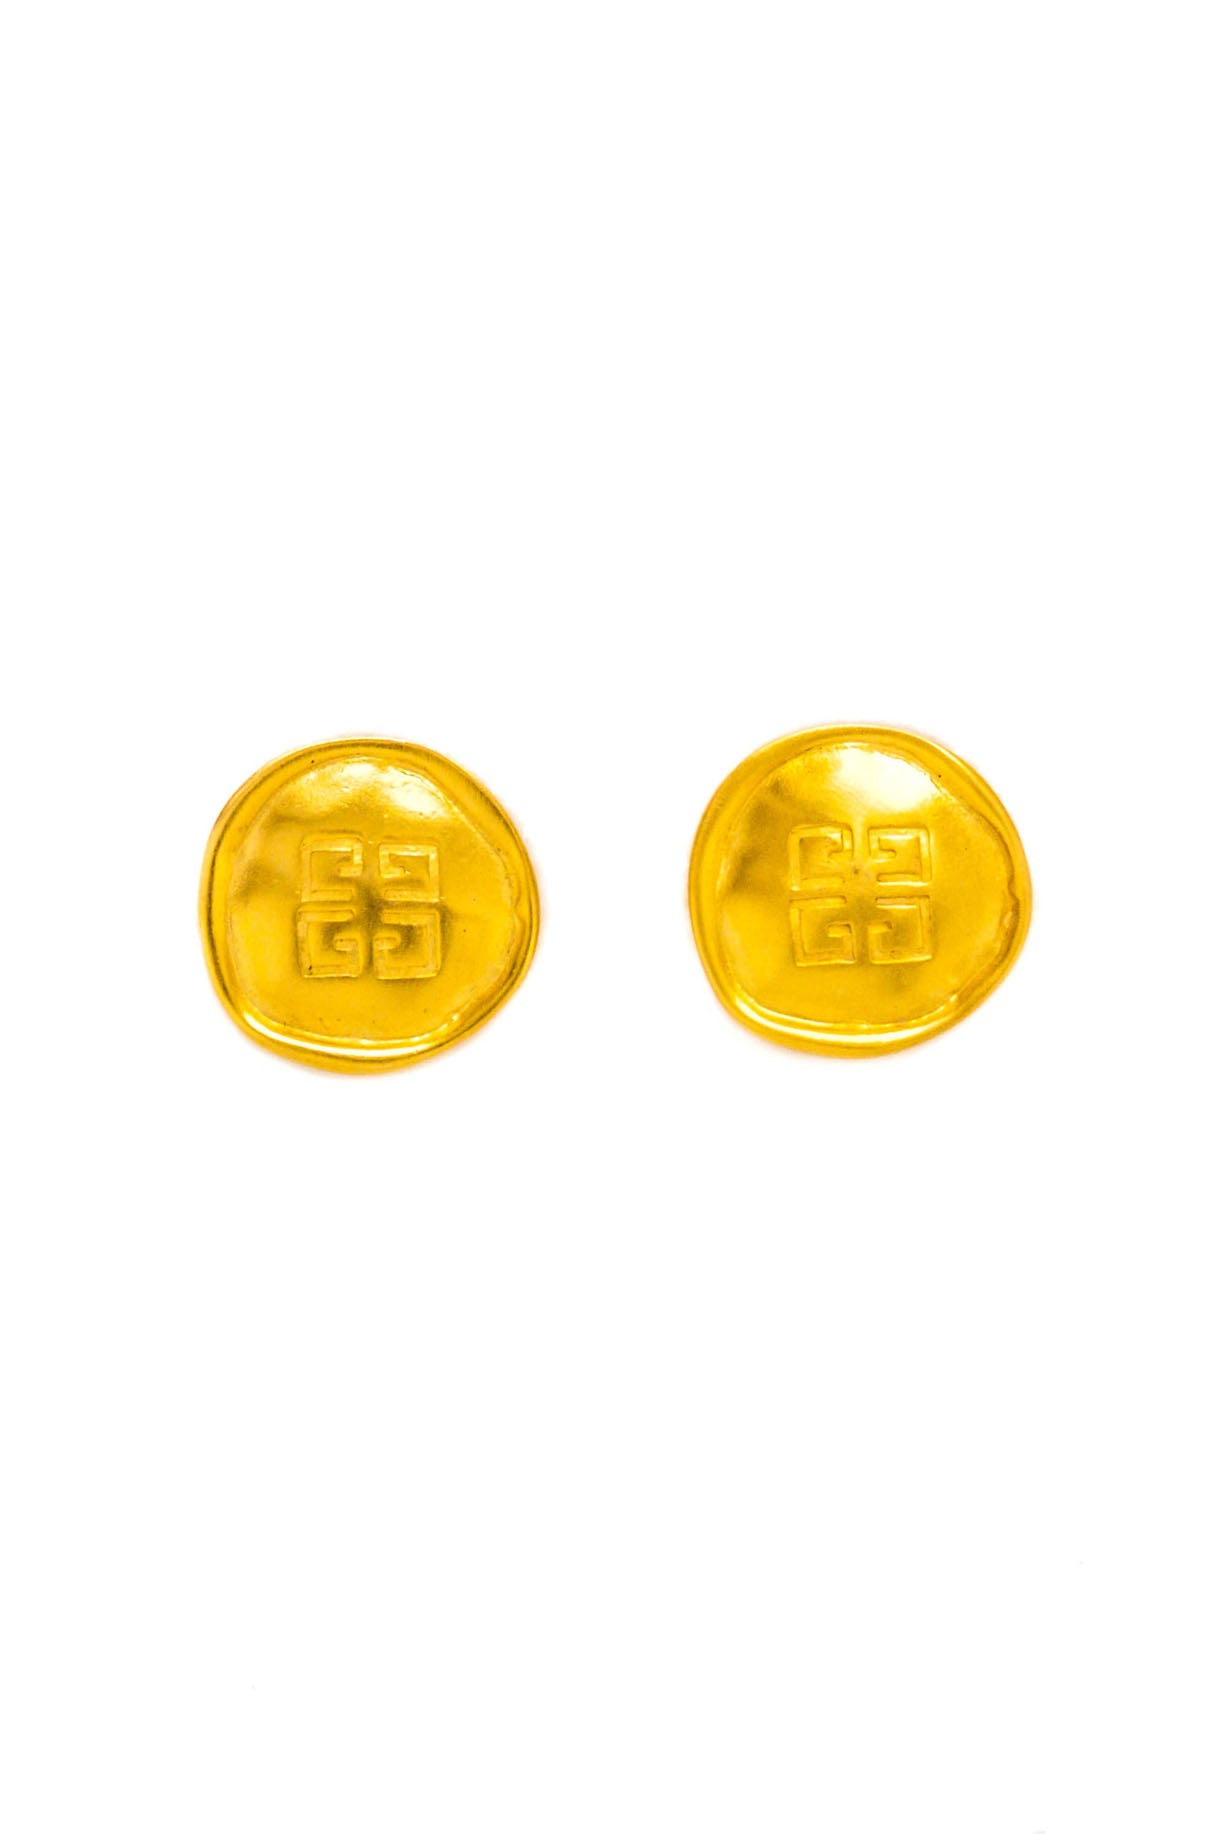 Vintage Givenchy Matte Coin Clip-on Earrings from Sweet and Spark